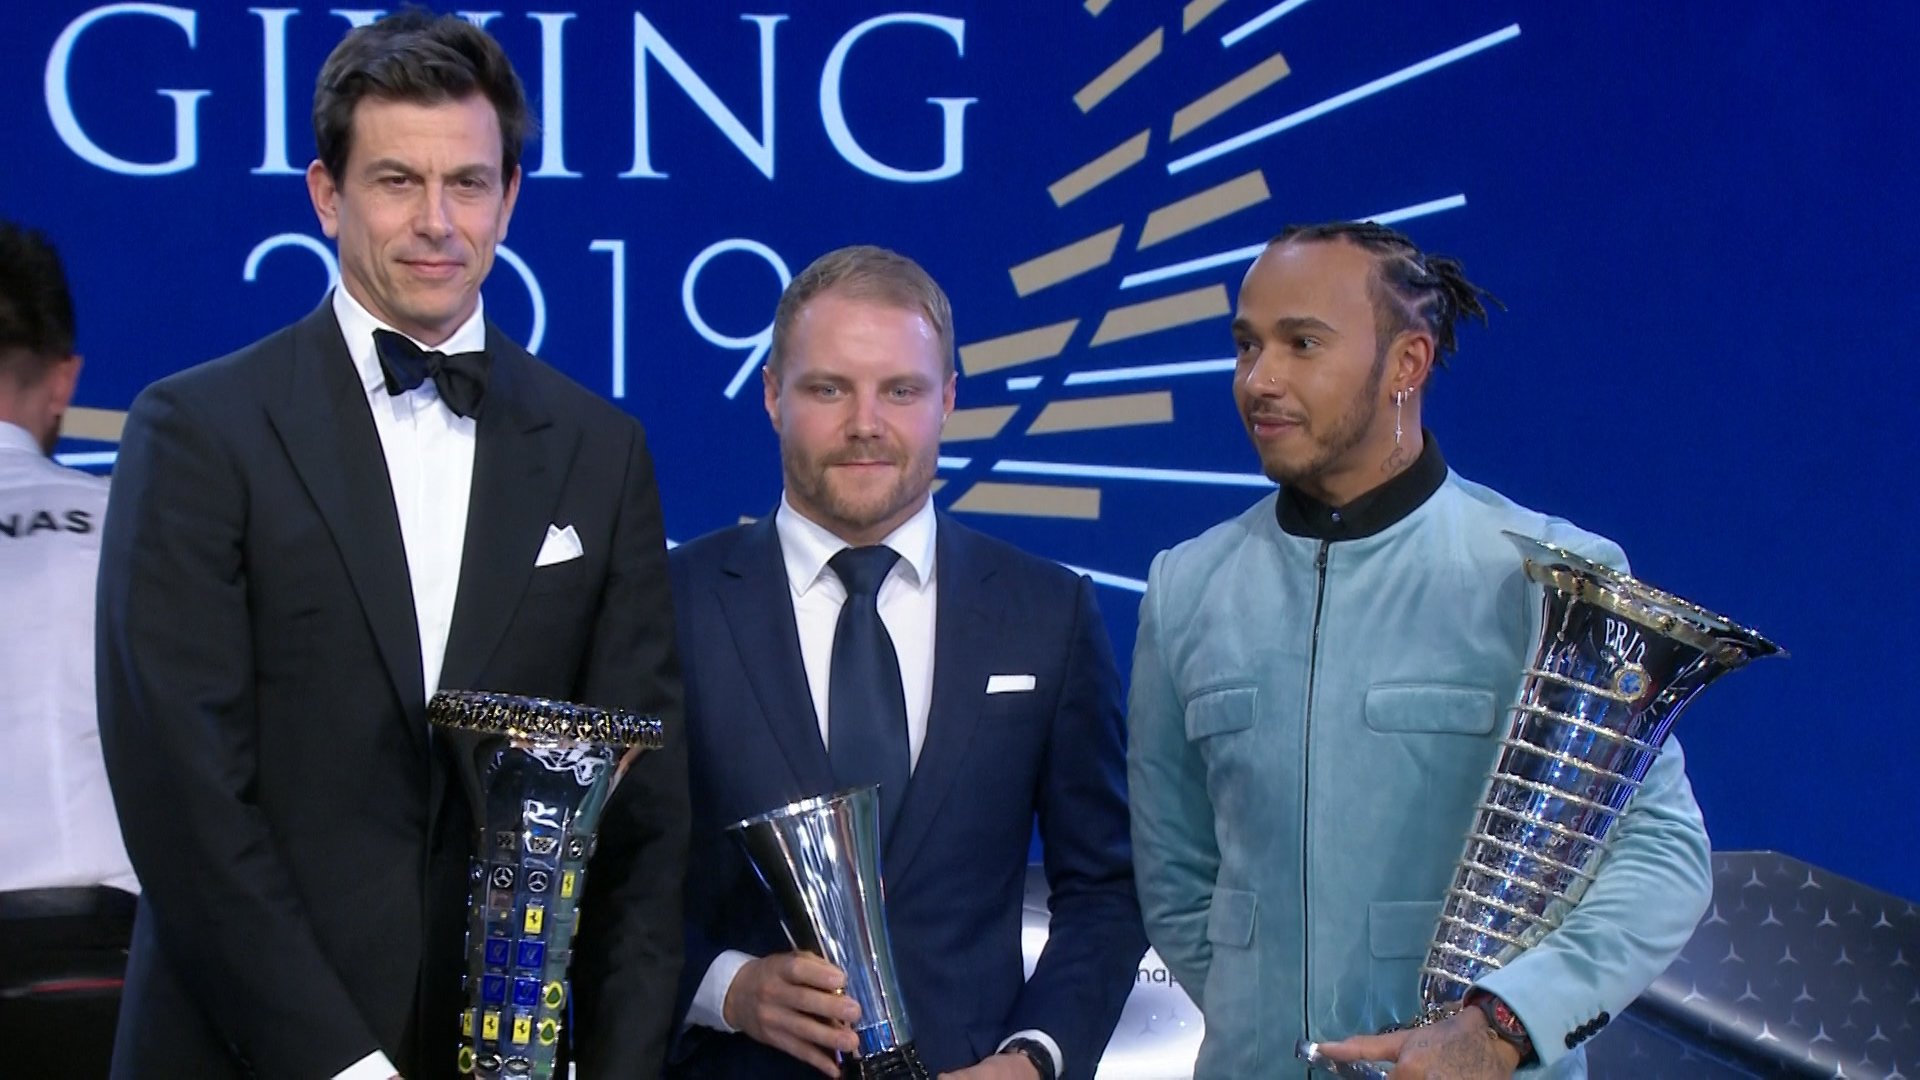 FIA Prize Giving: Lewis Hamilton awarded 2019 World Championship trophy